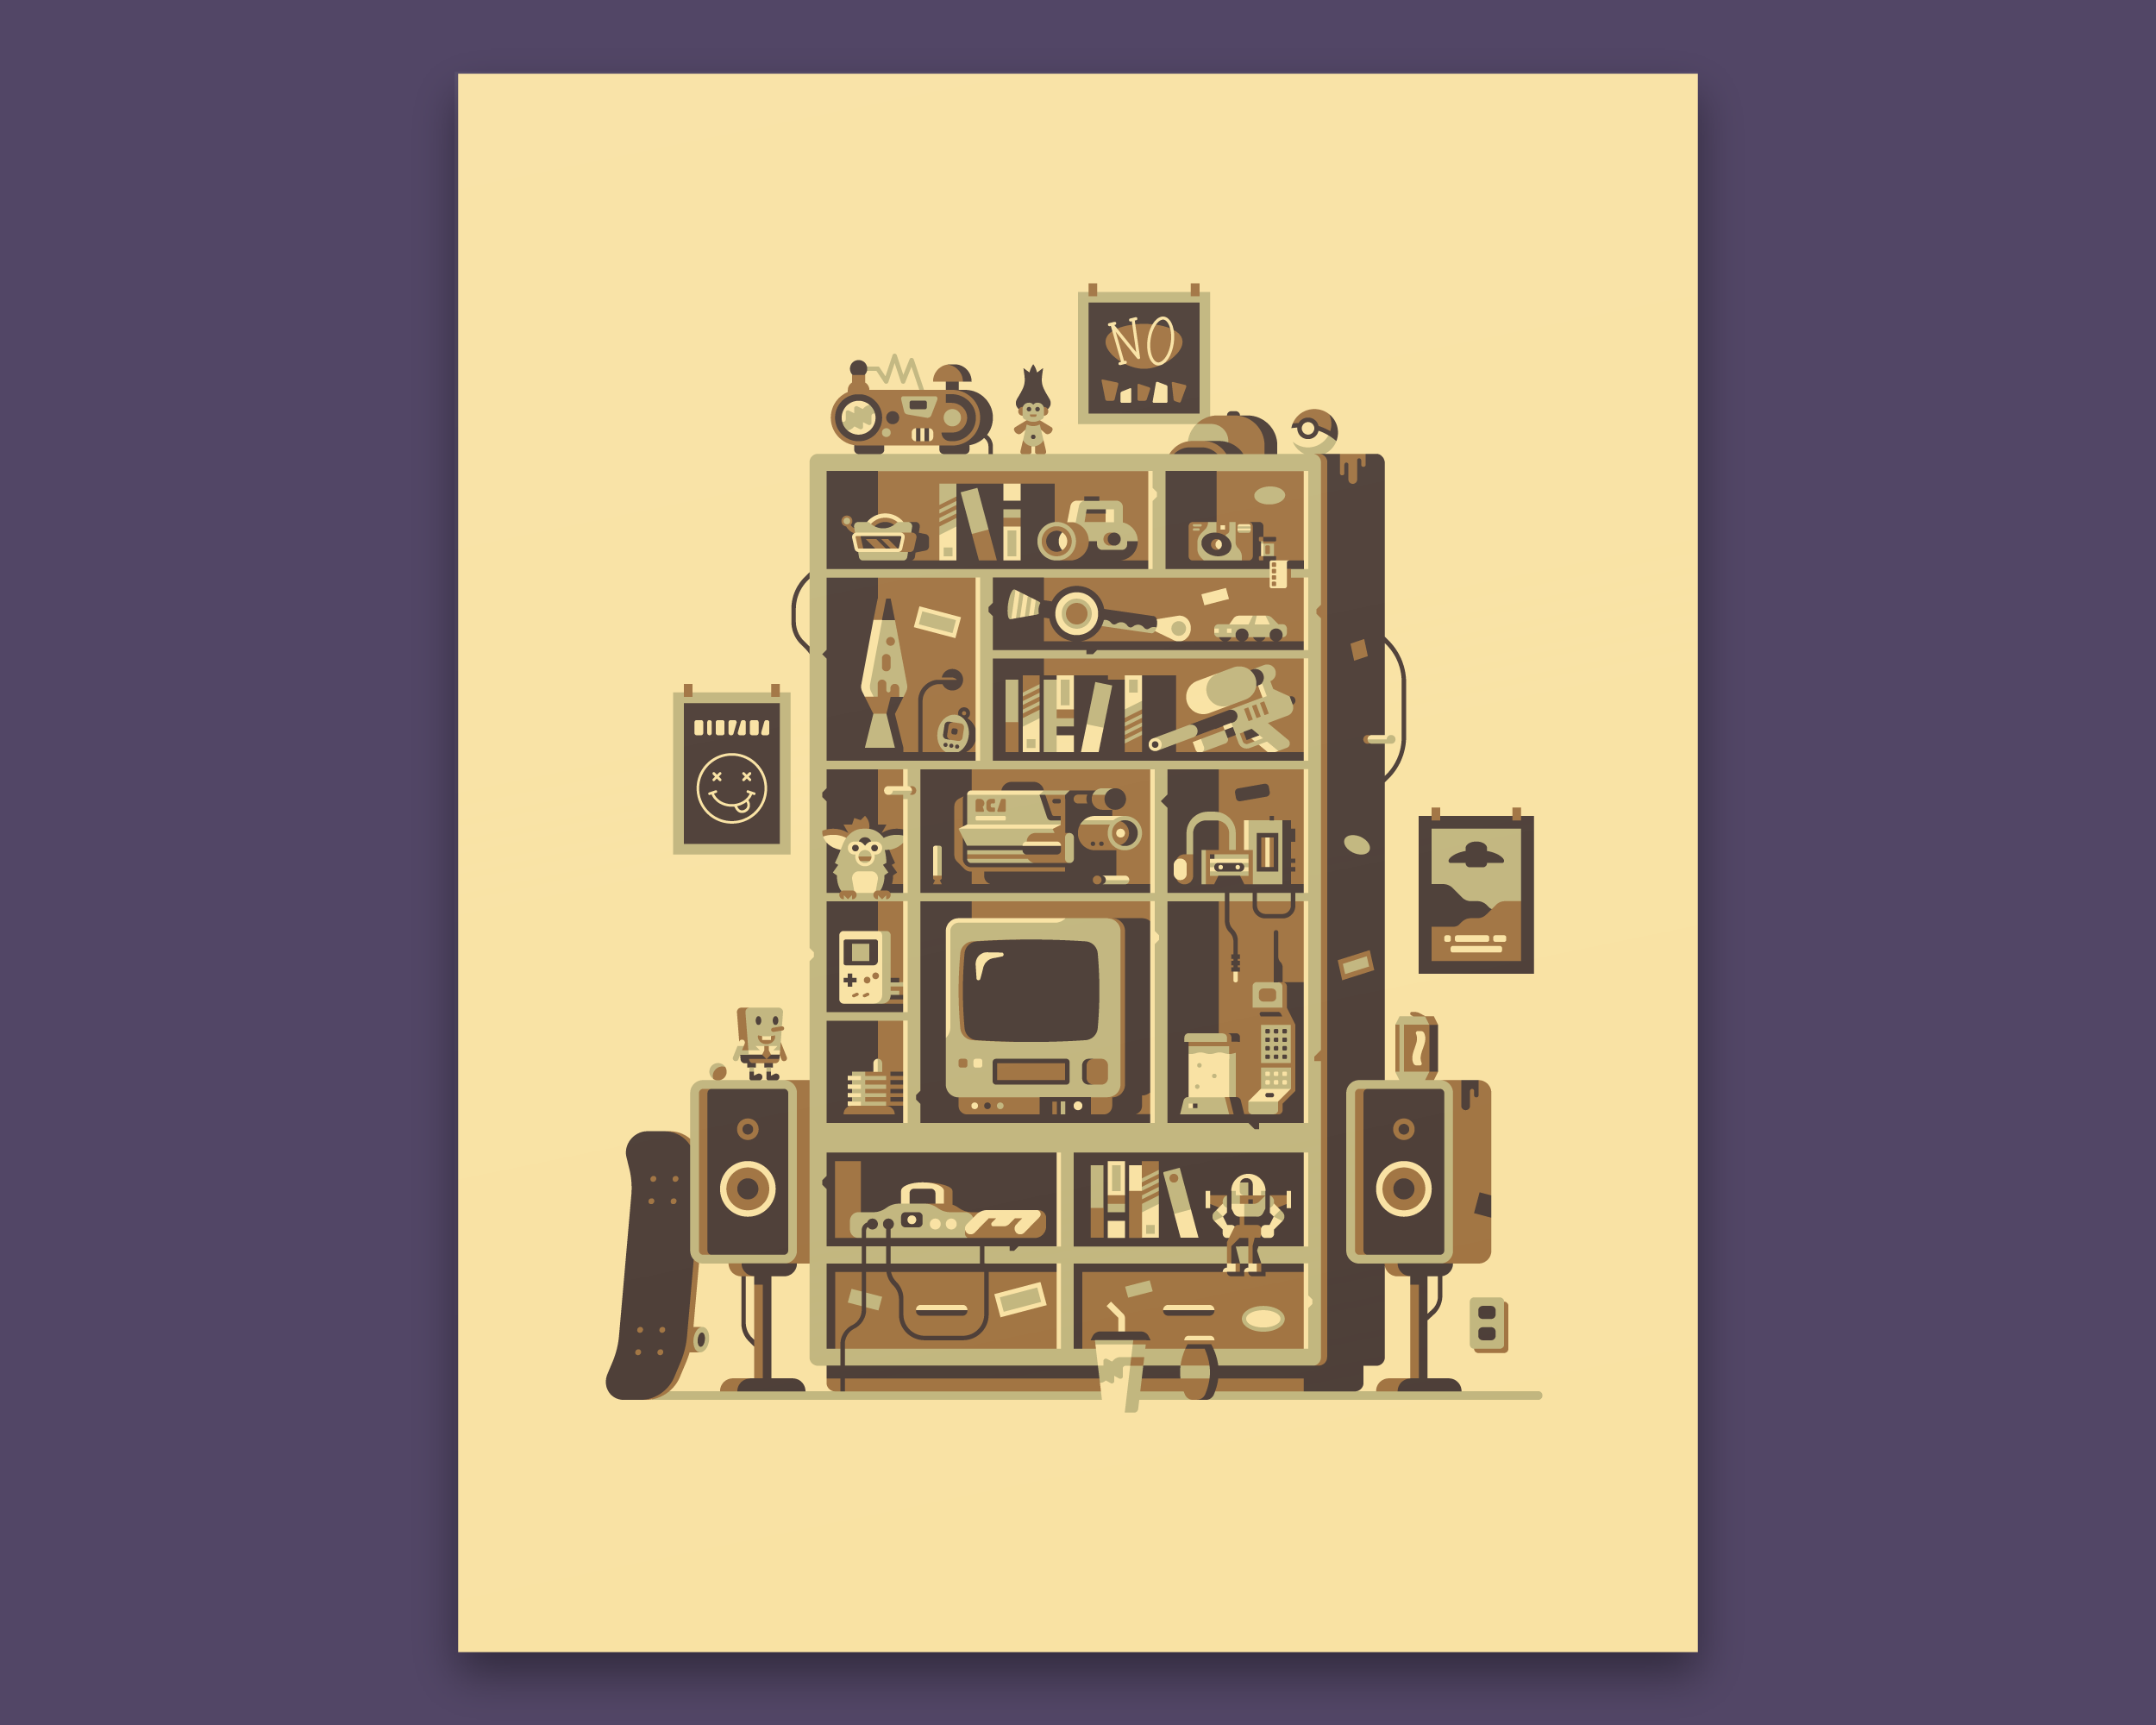 Gallery 1988 90s print by Canopy Design and Illustration